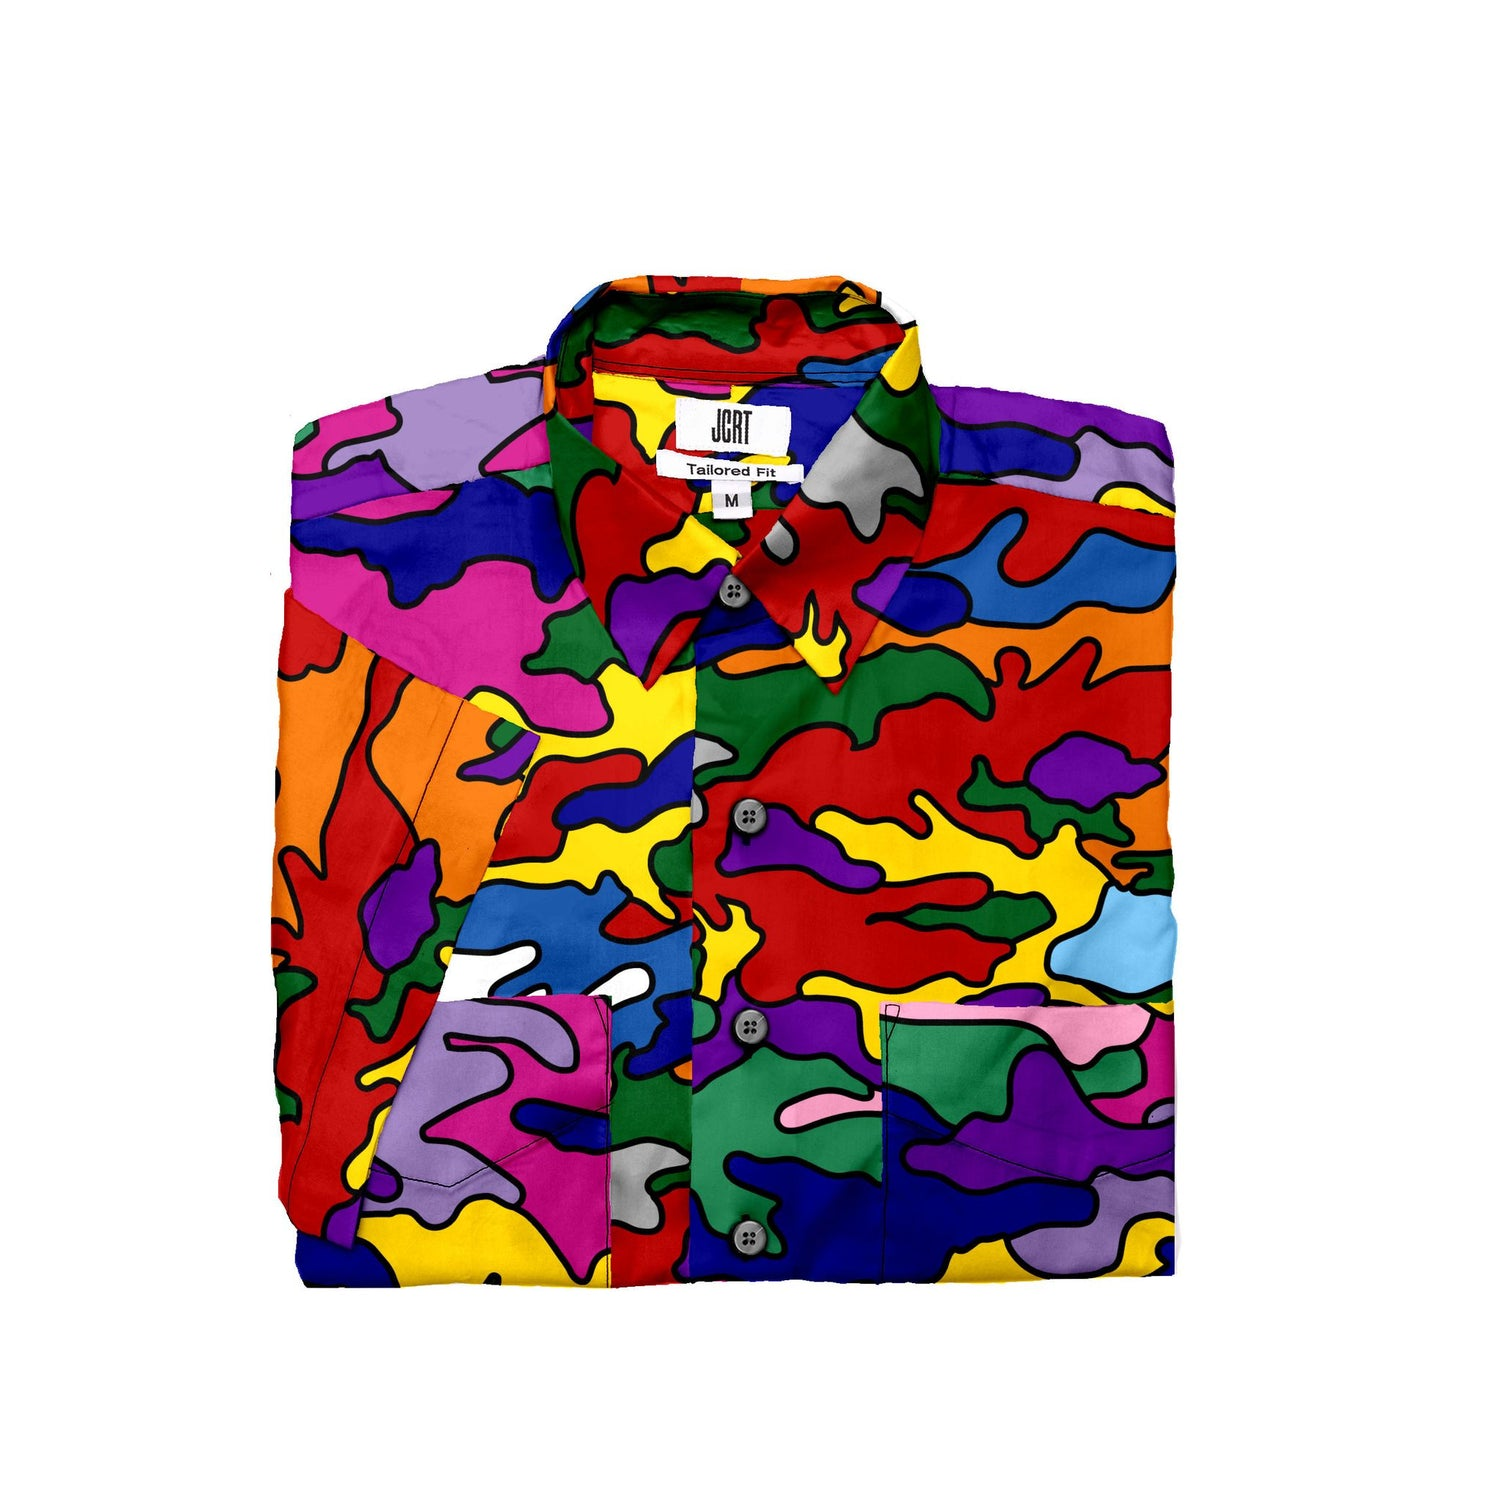 The Pride Camouflage Short Sleeve Shirt